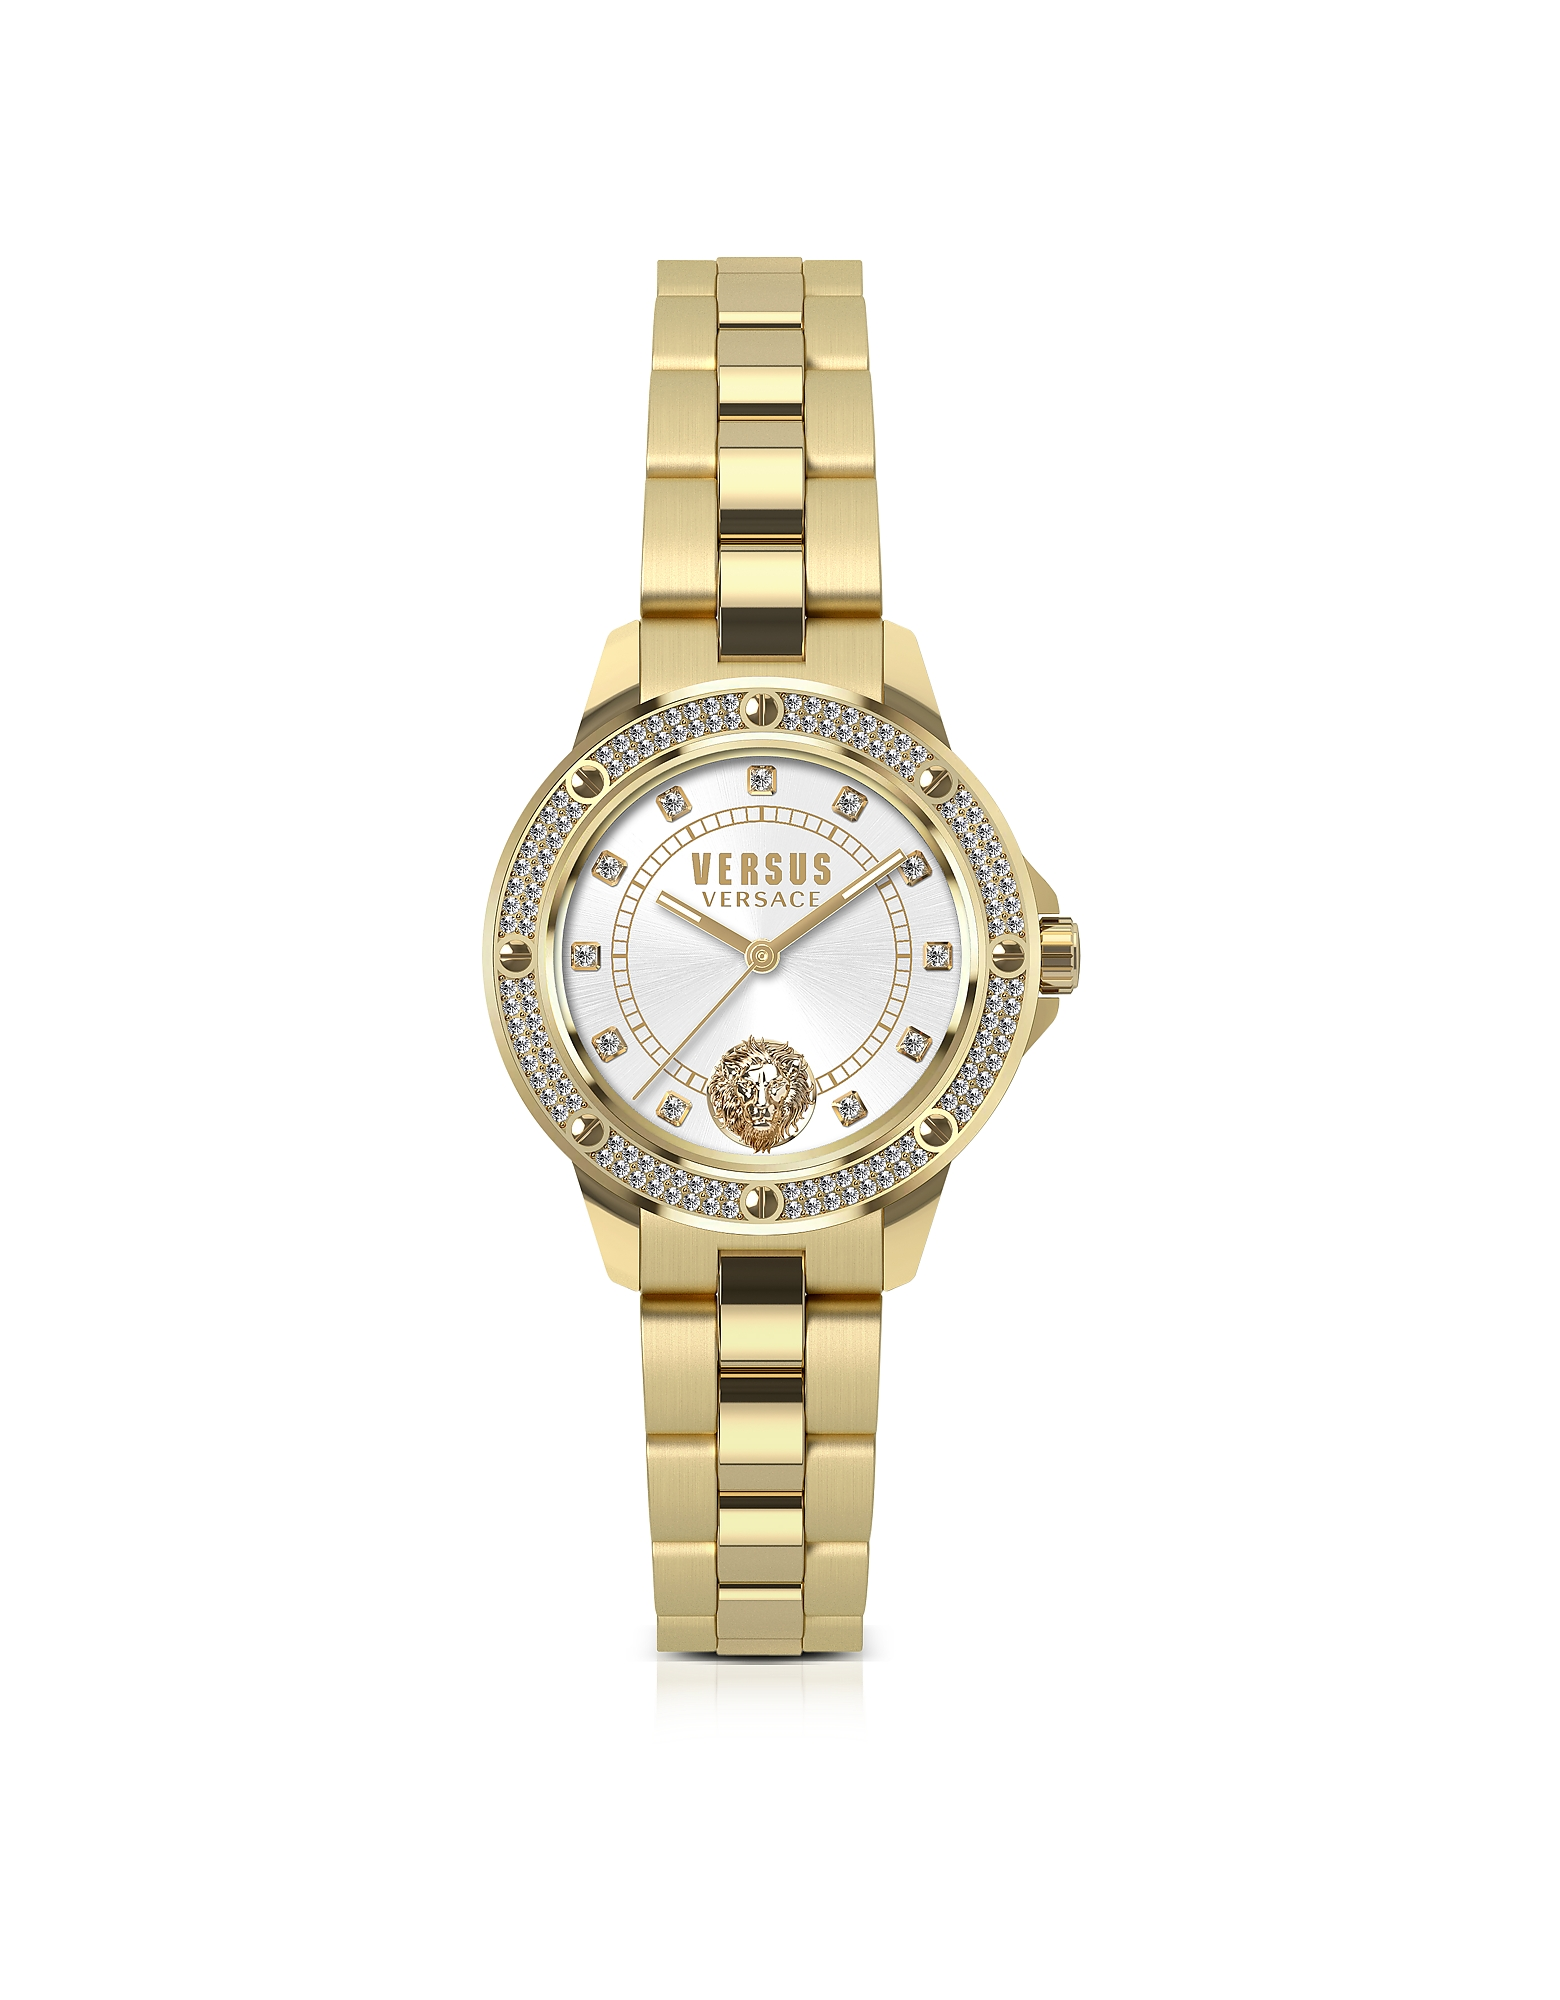 South Horizons Gold Tone Crystal Stainless Steel Women's Bracelet Watch w/White Dial